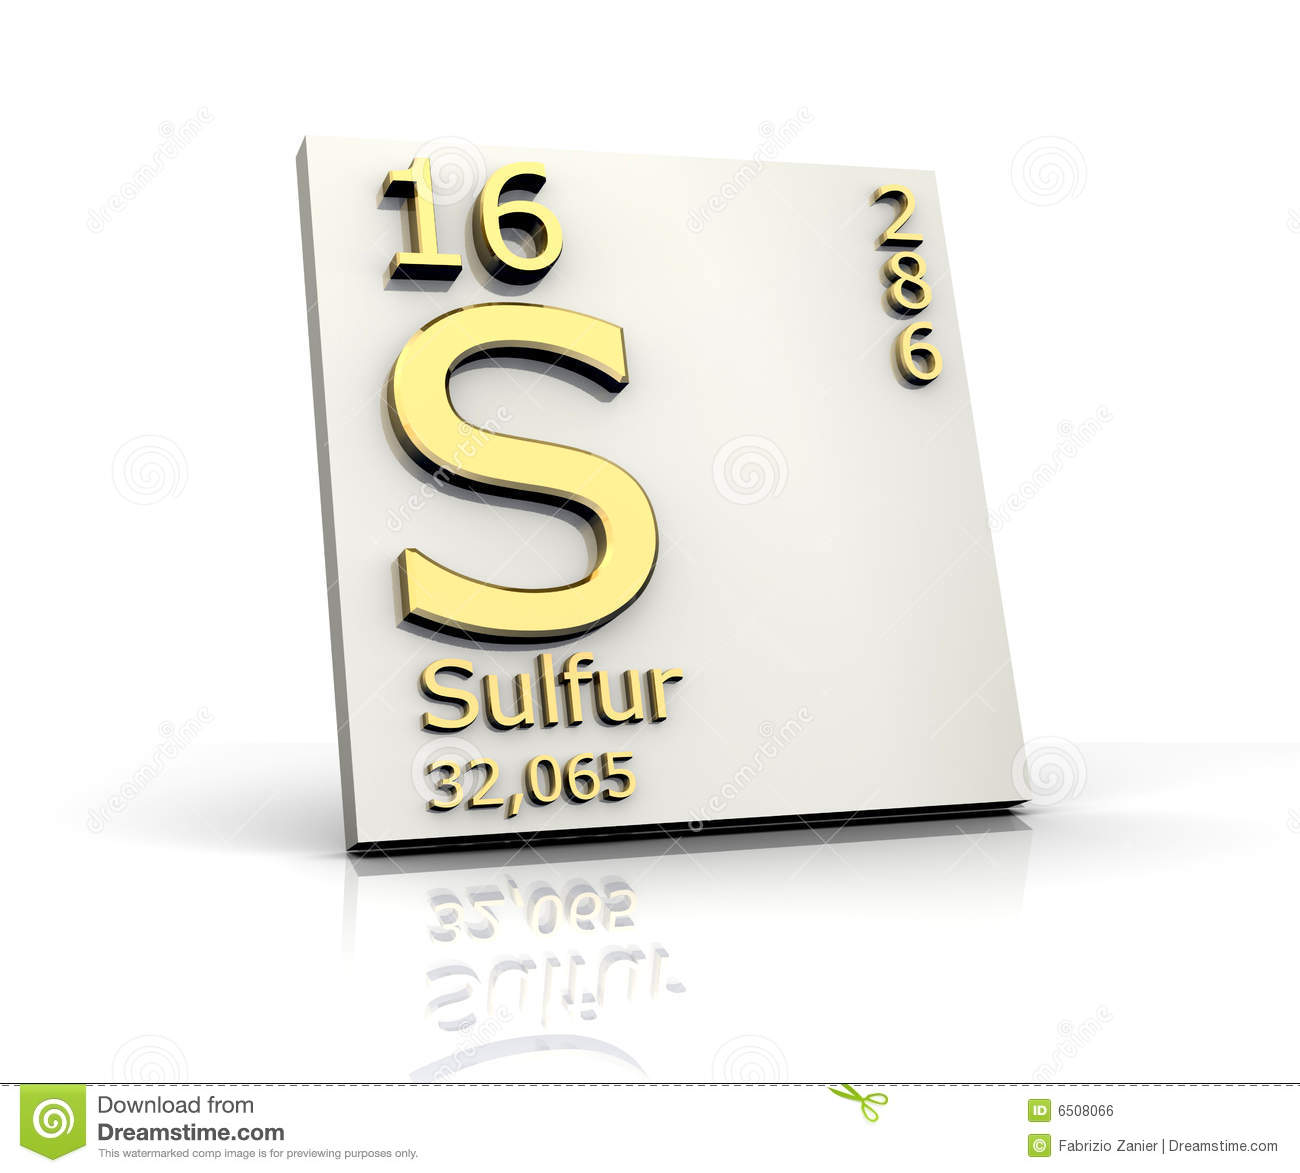 Sulfur form periodic table of elements stock illustration sulfur form periodic table of elements buycottarizona Image collections